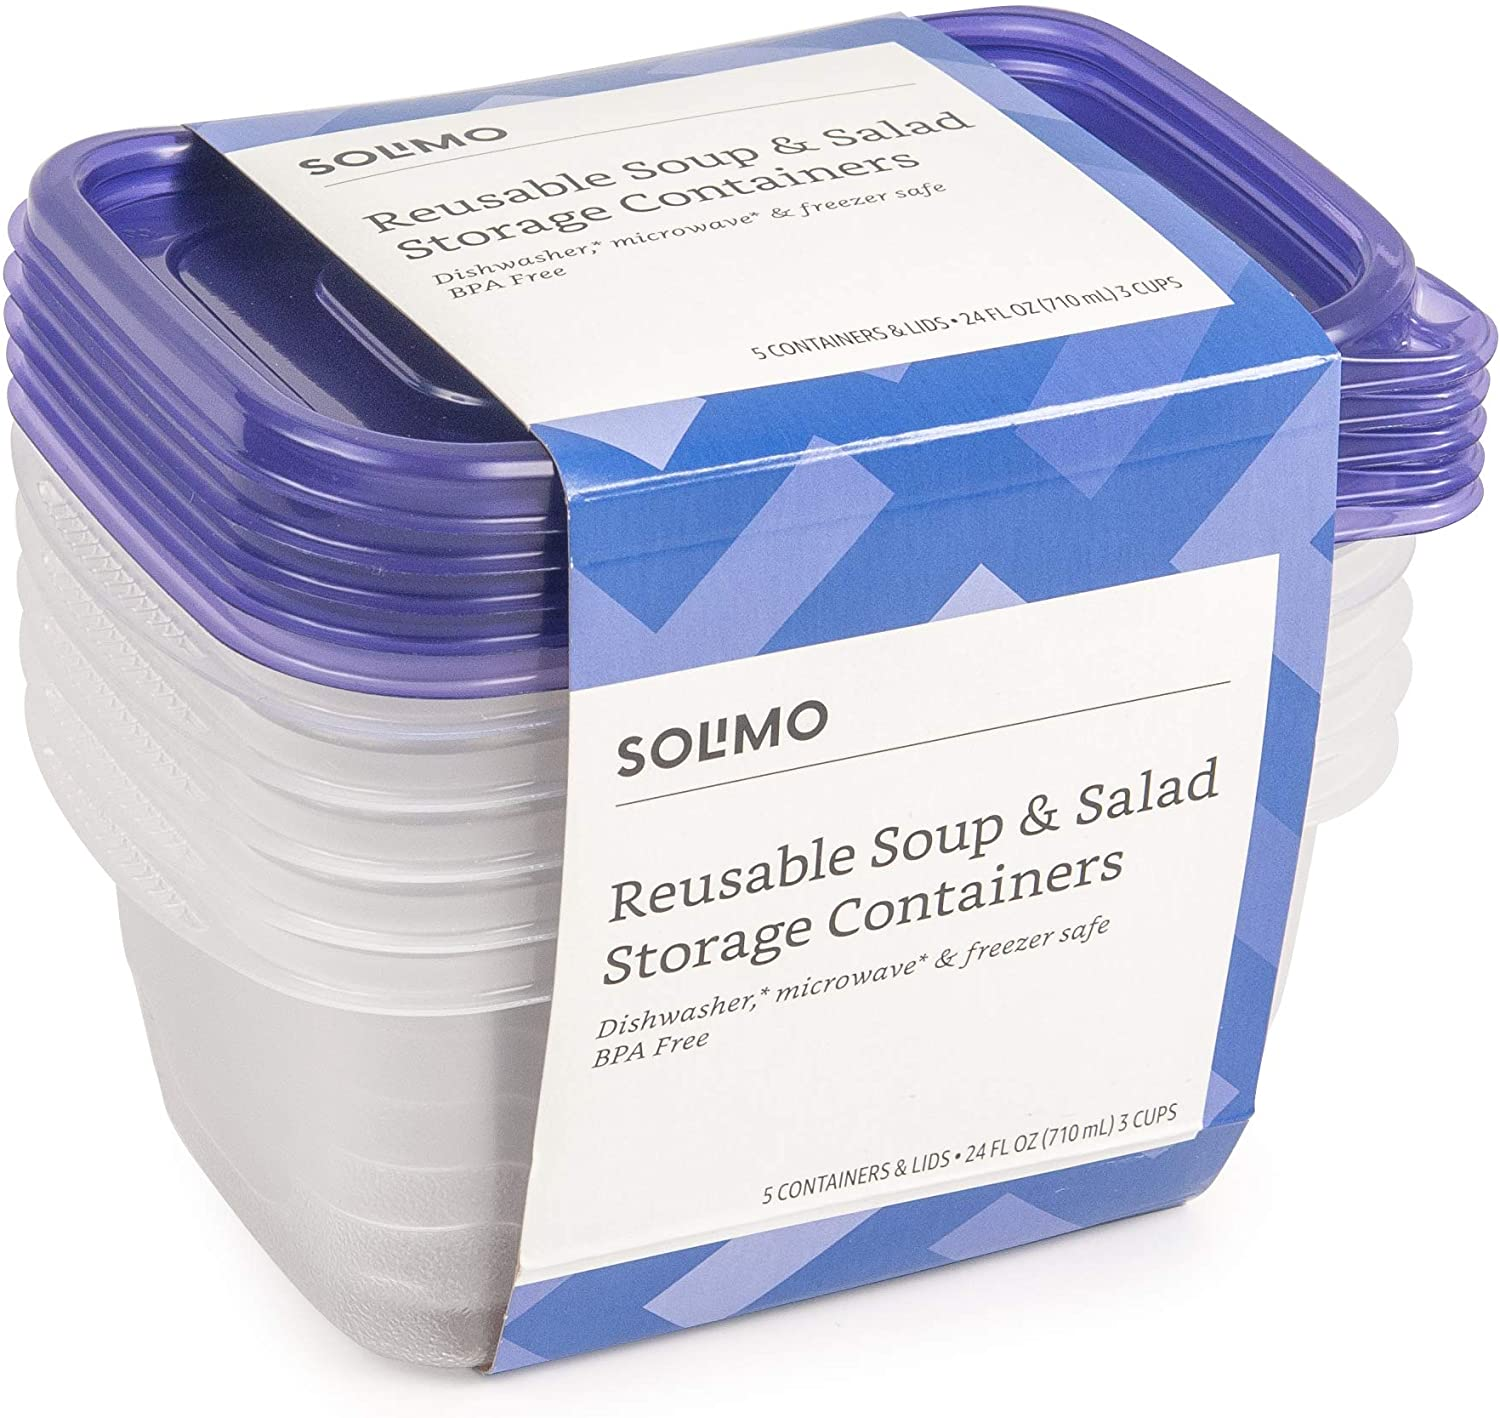 Amazon Brand - Solimo Plastic Food Storage Containers with Lids (30 Pack) - BPA-Free, Safe for Dishwasher, Microwave, Freezer - Soup & Salad 24 oz.